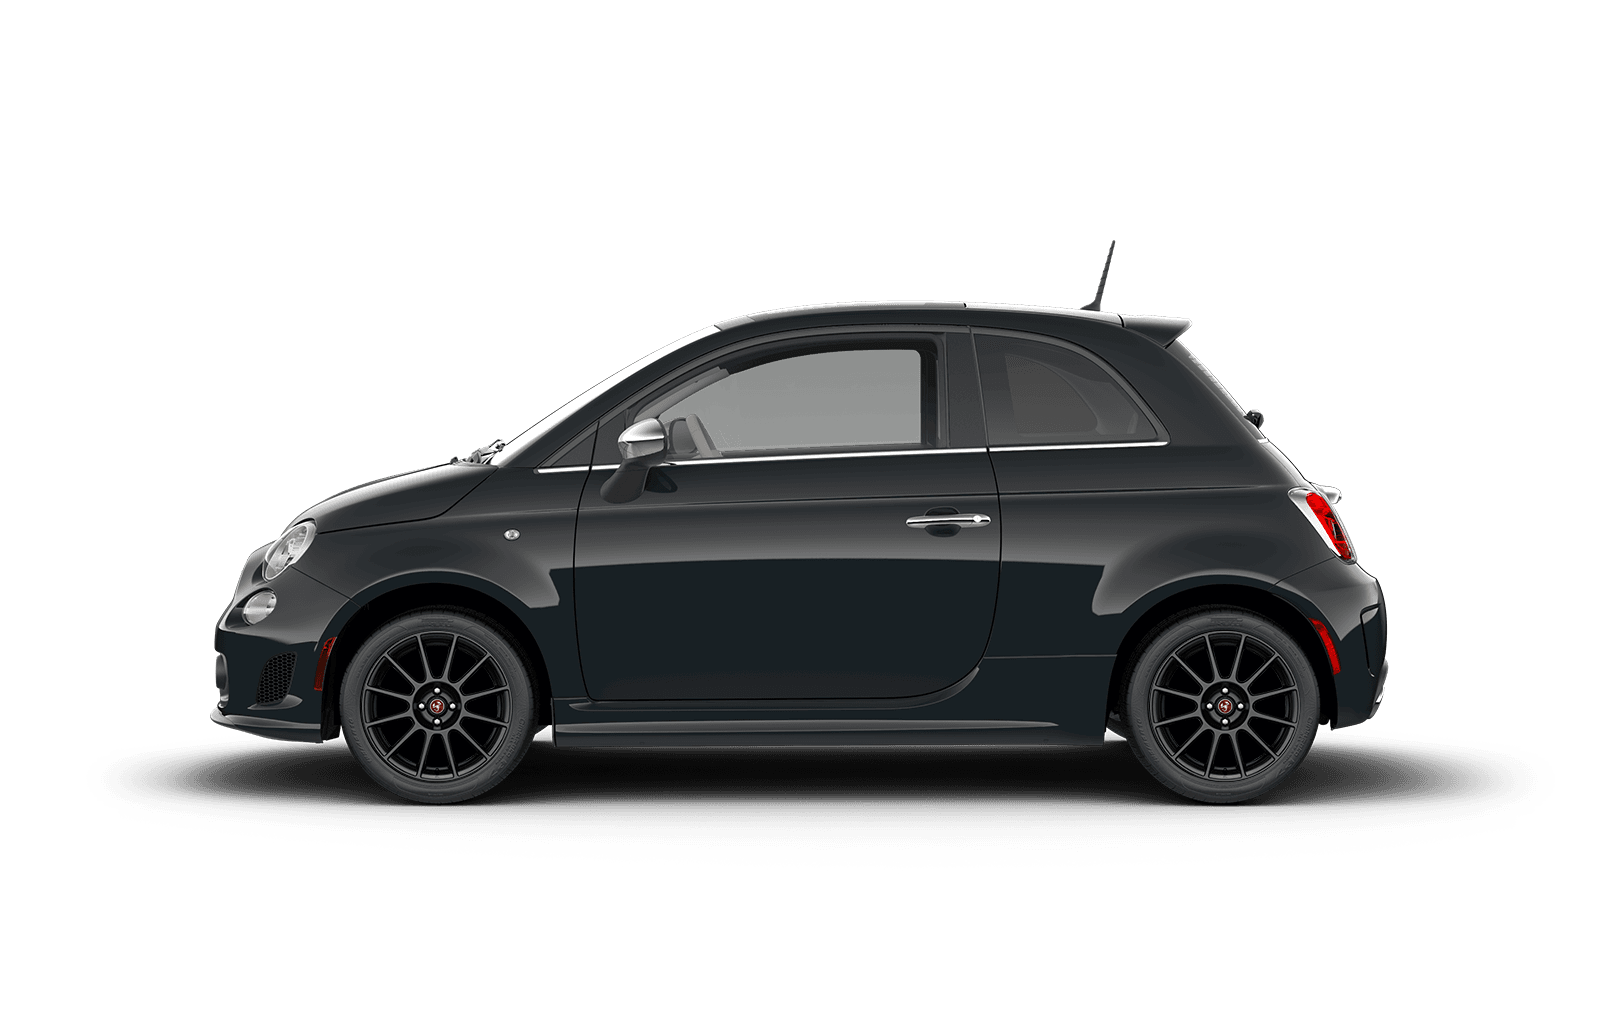 17-inch Hyper Black Forged Aluminum Wheels available on 2018 FIAT 500 Abarth